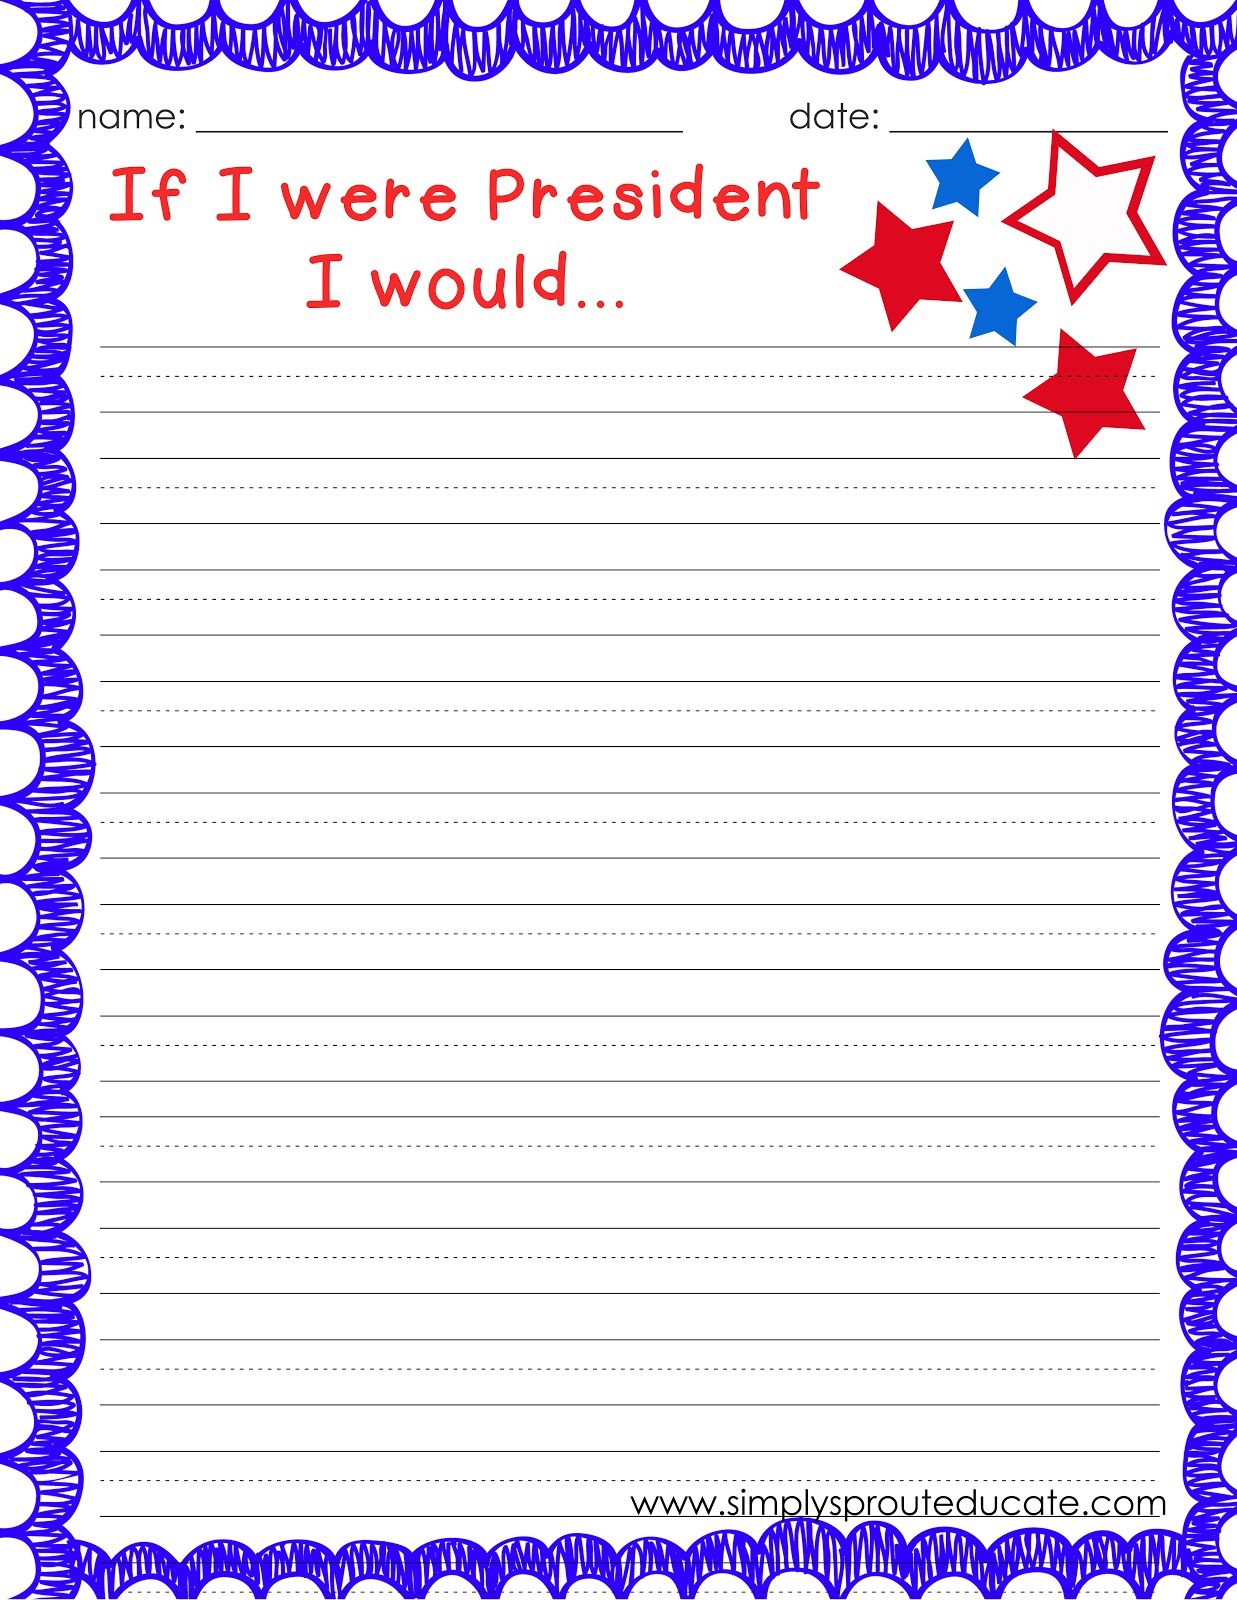 Roles Of The President Worksheet Answers